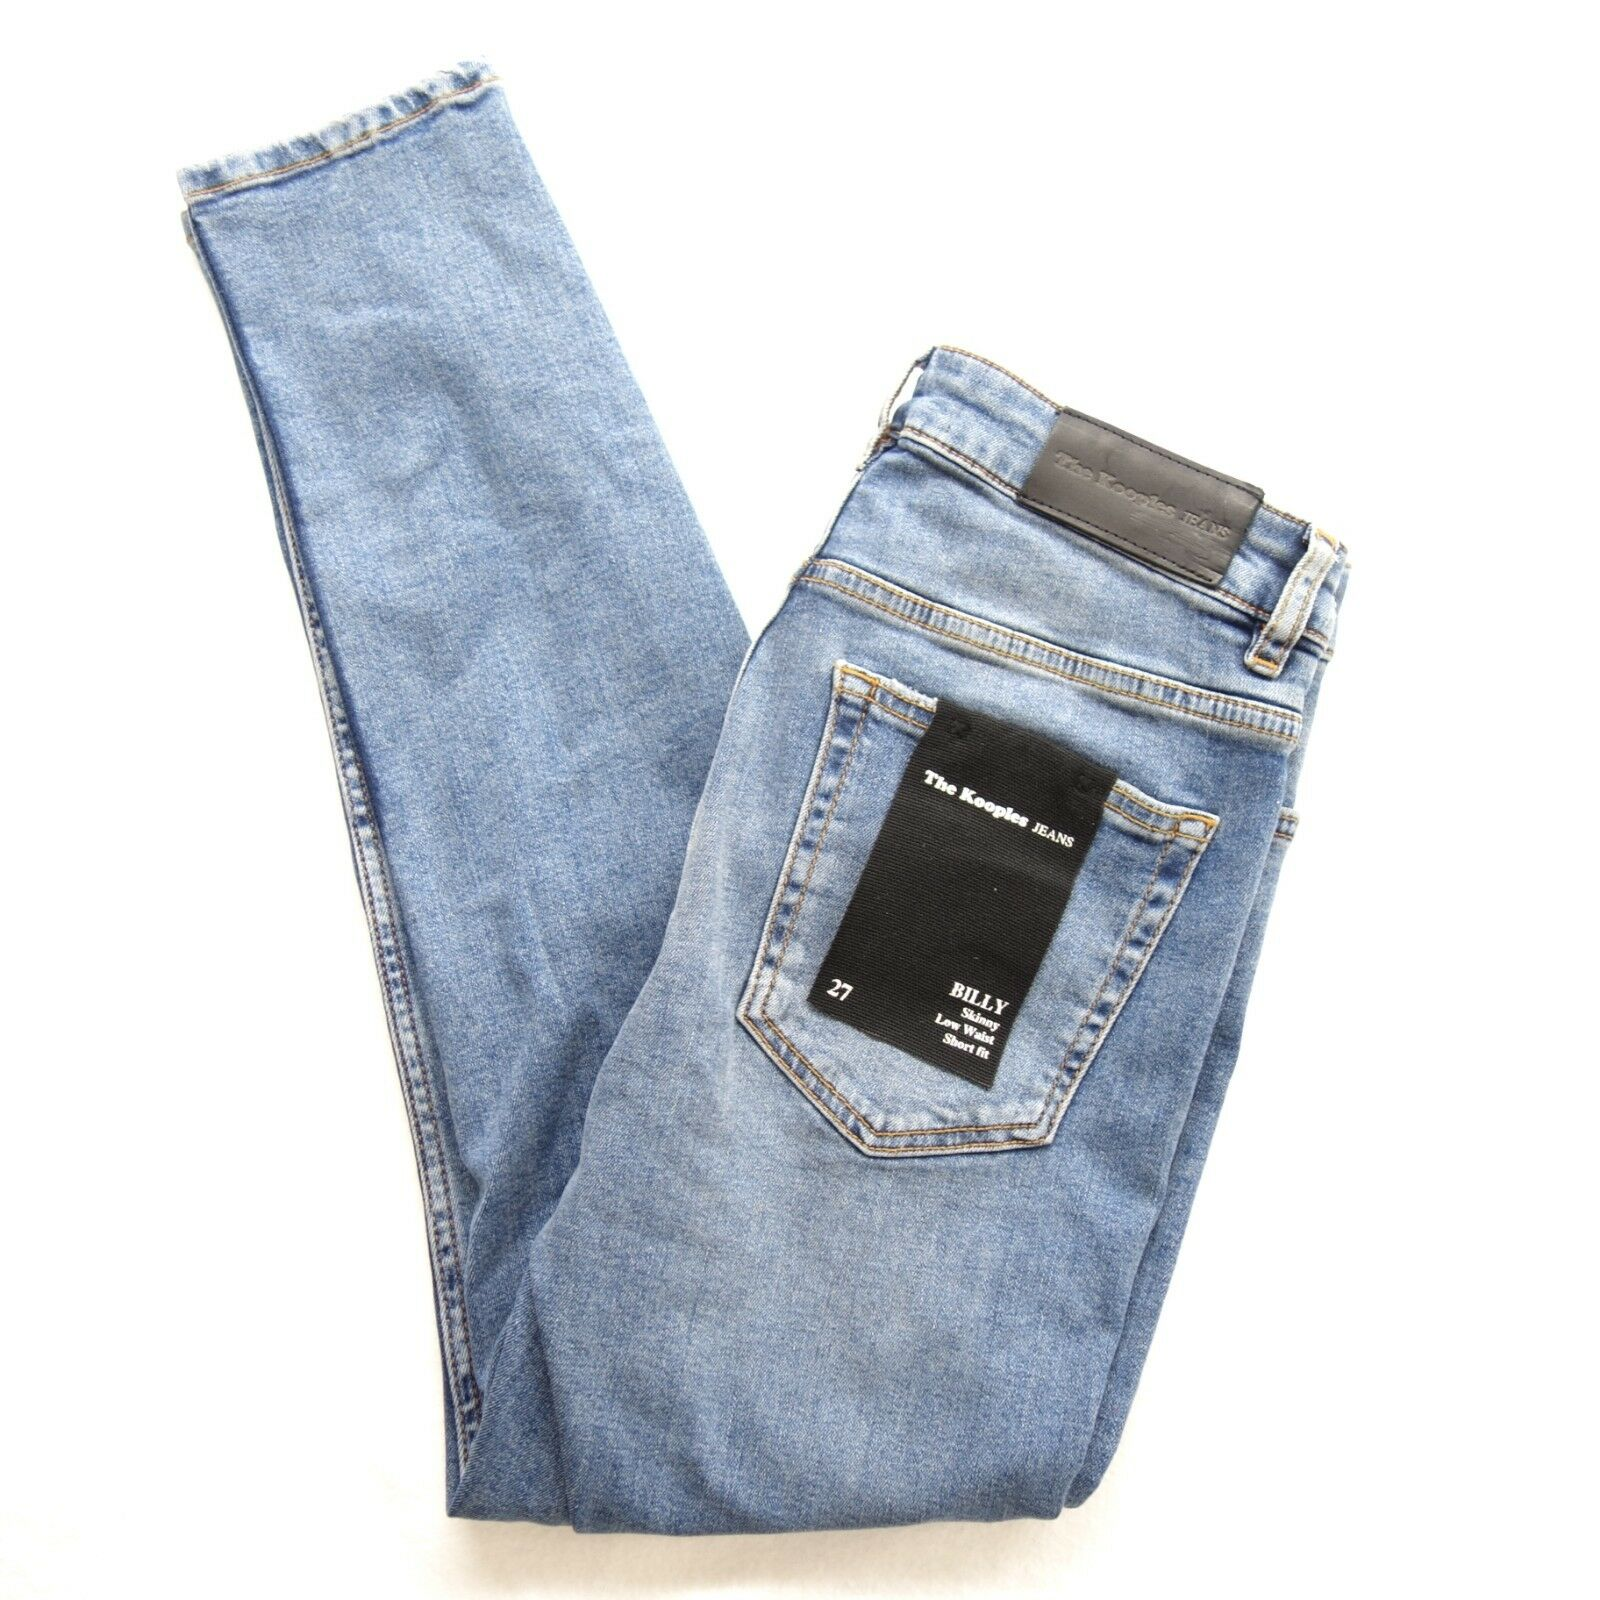 New The Kooples Womans Scull Distressed Skinny Billy Jeans in bluee 27 X 26